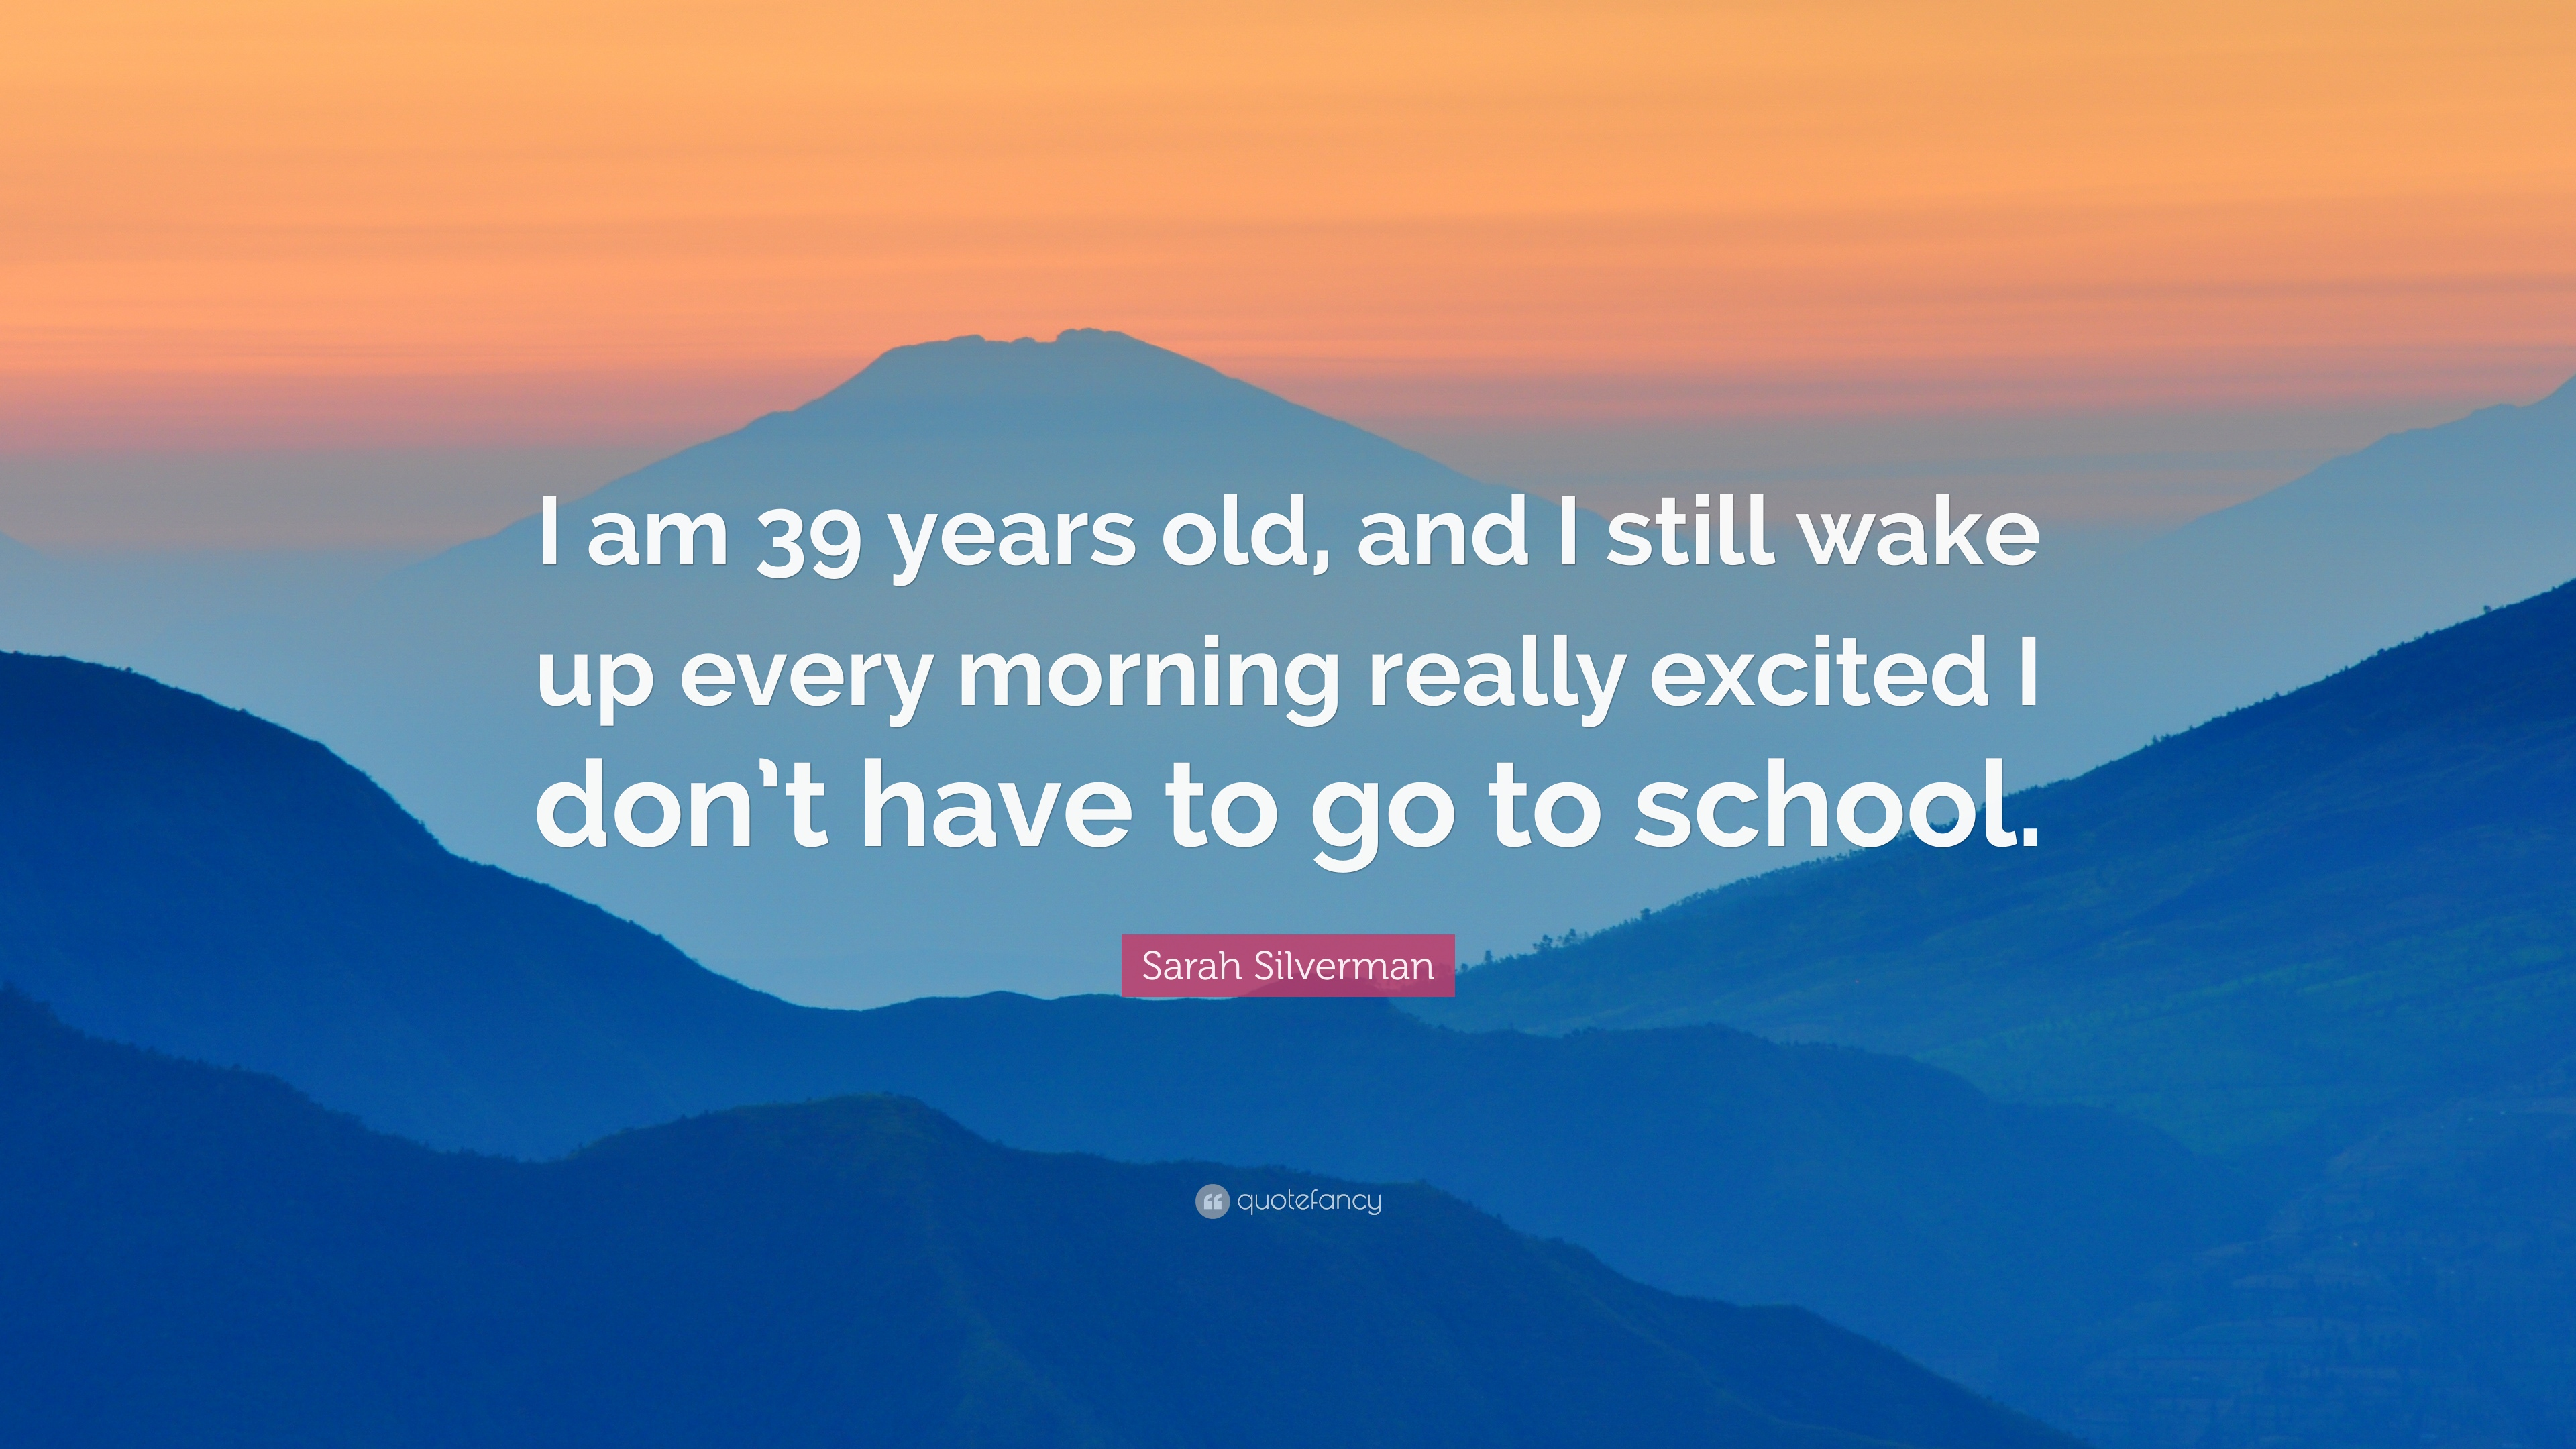 Sarah silverman quote i am 39 years old and i still wake up